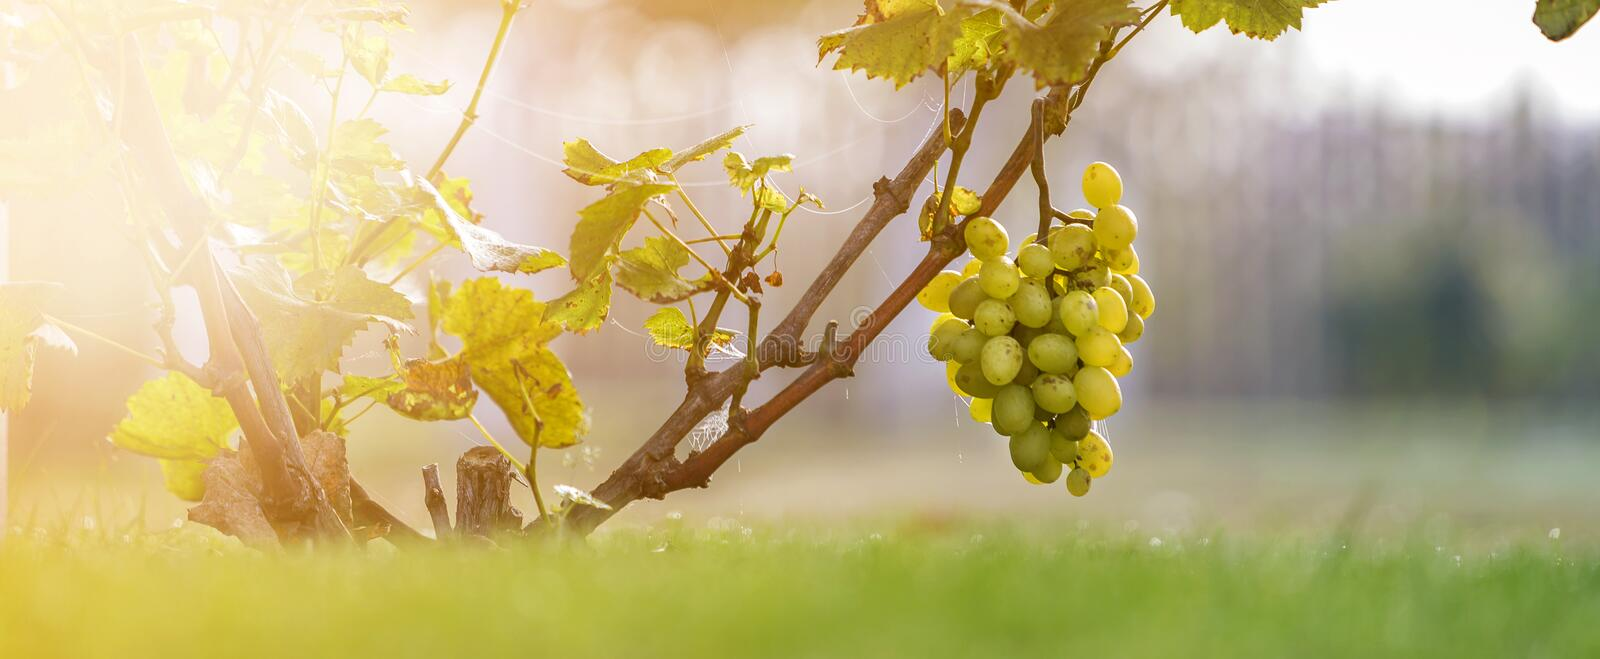 Close-up of growing young vine plants tied to metal frame with green leaves and big golden yellow ripe grape clusters on blurred. Sunny colorful bokeh stock photos